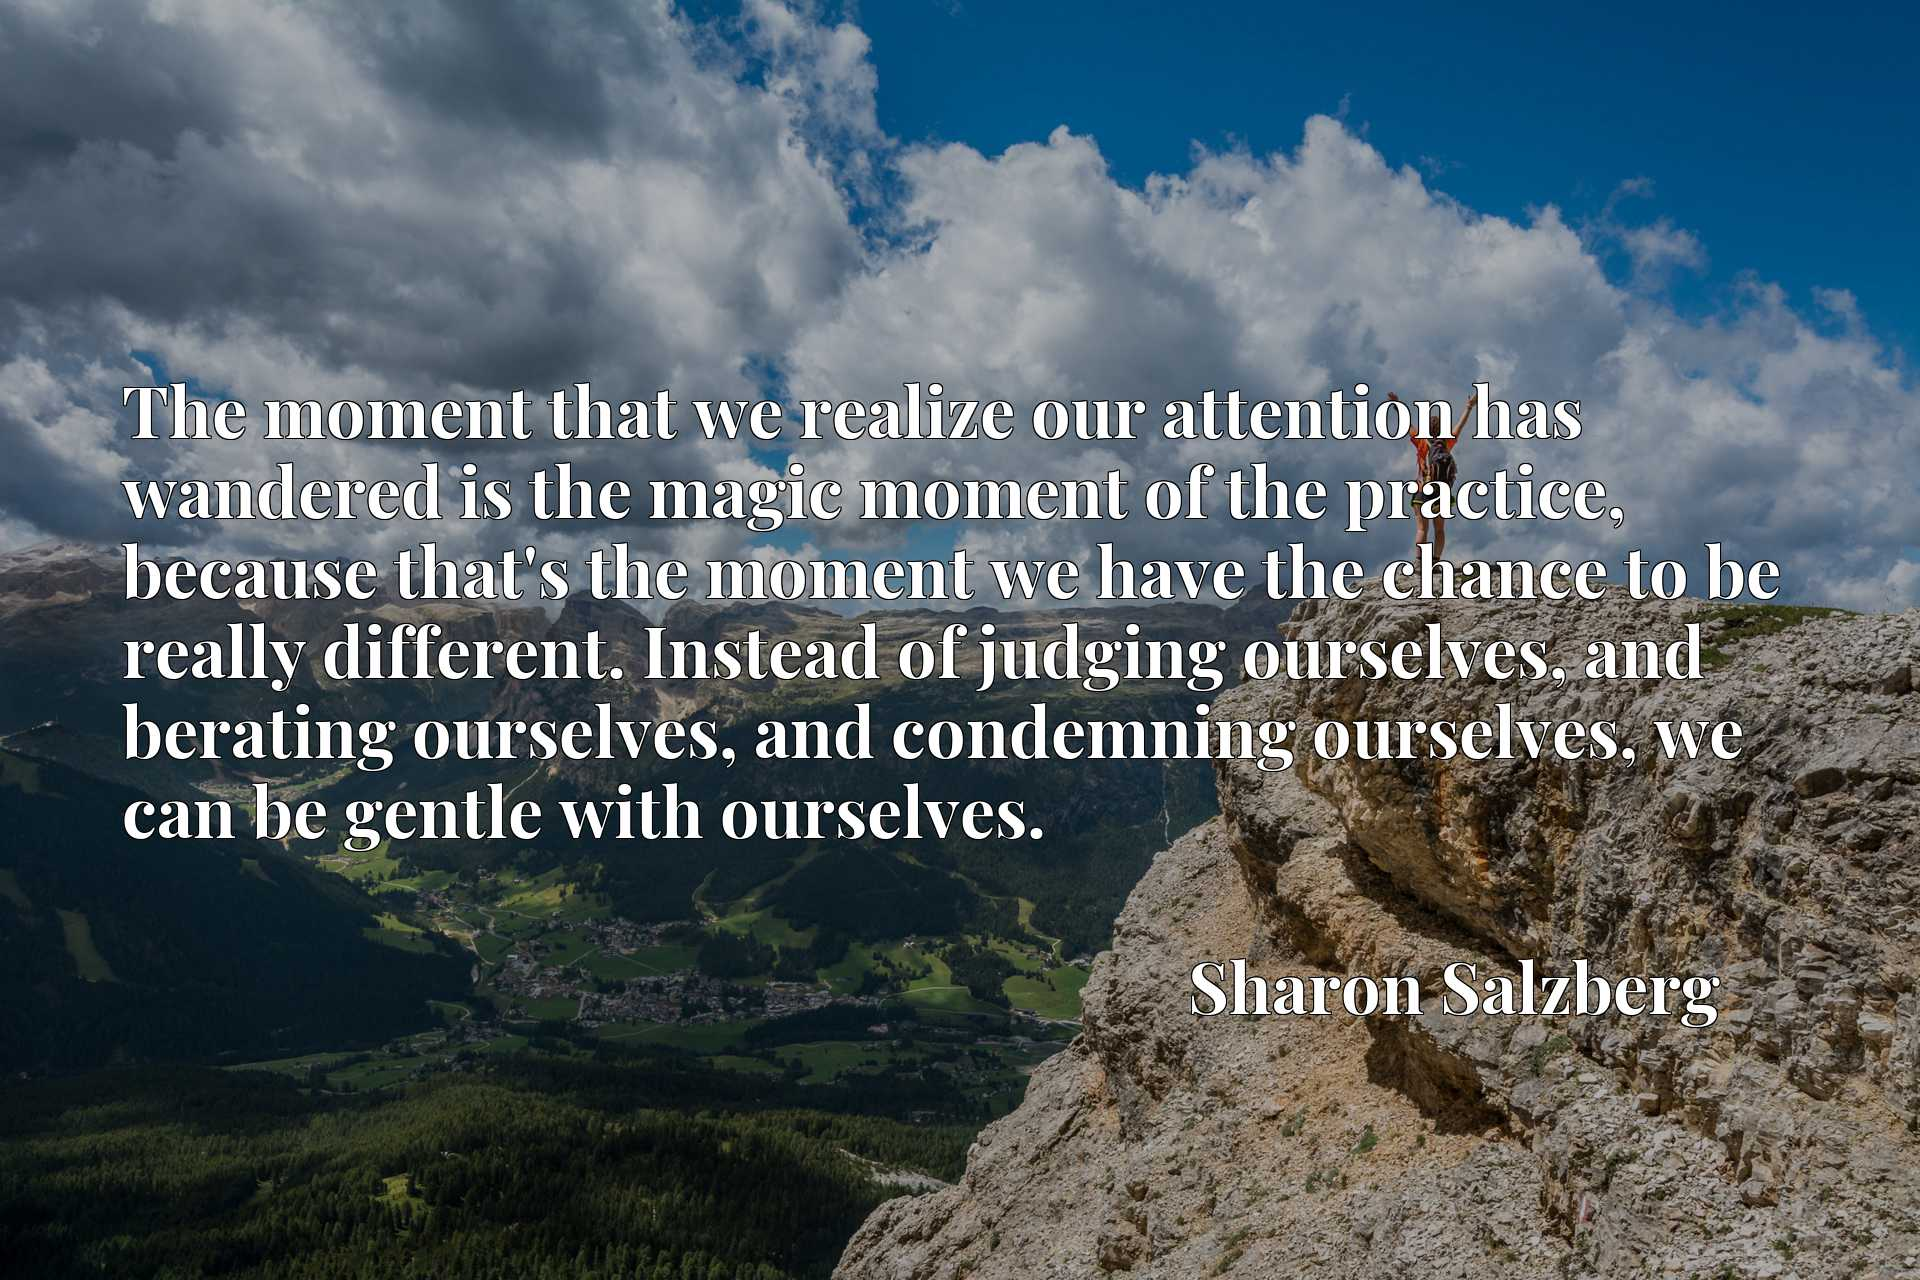 The moment that we realize our attention has wandered is the magic moment of the practice, because that's the moment we have the chance to be really different. Instead of judging ourselves, and berating ourselves, and condemning ourselves, we can be gentle with ourselves.